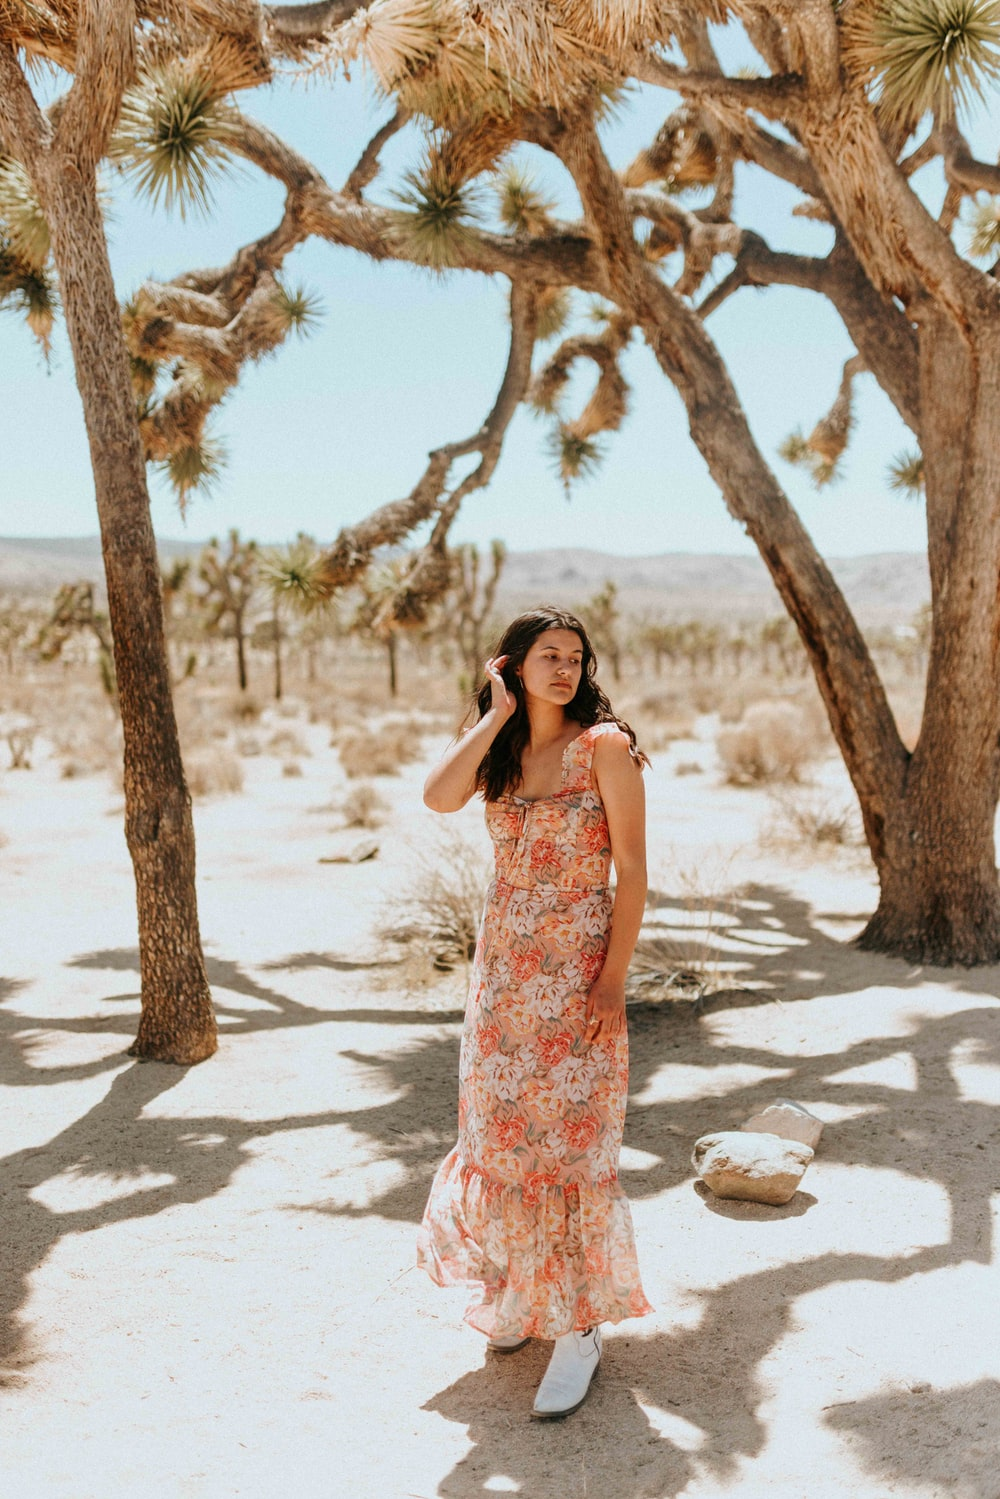 woman in white and red floral sleeveless dress standing on white sand during daytime